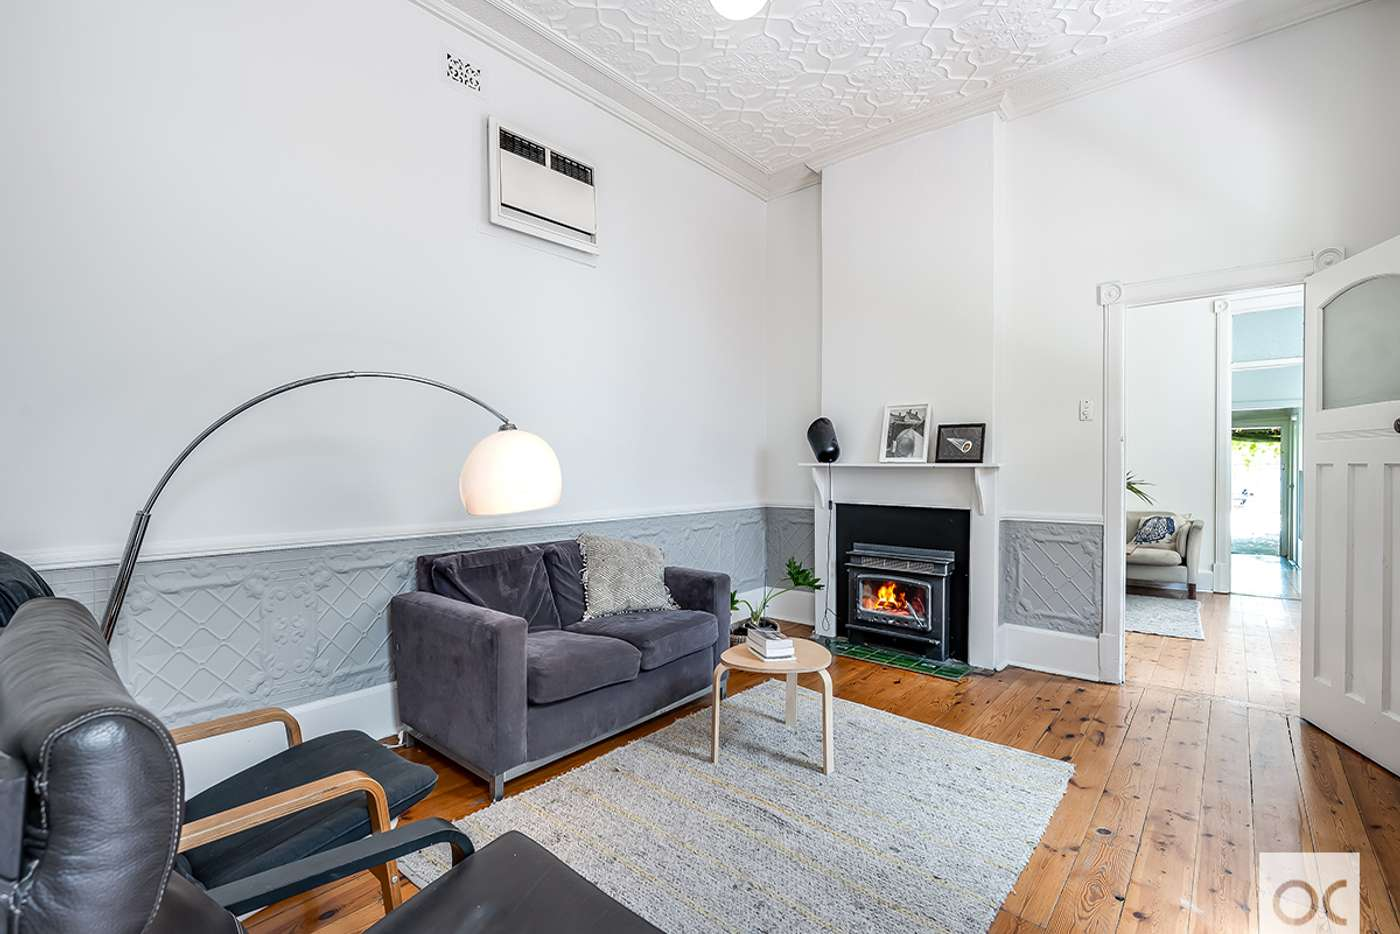 Sixth view of Homely house listing, 41 Huntriss Street, Torrensville SA 5031